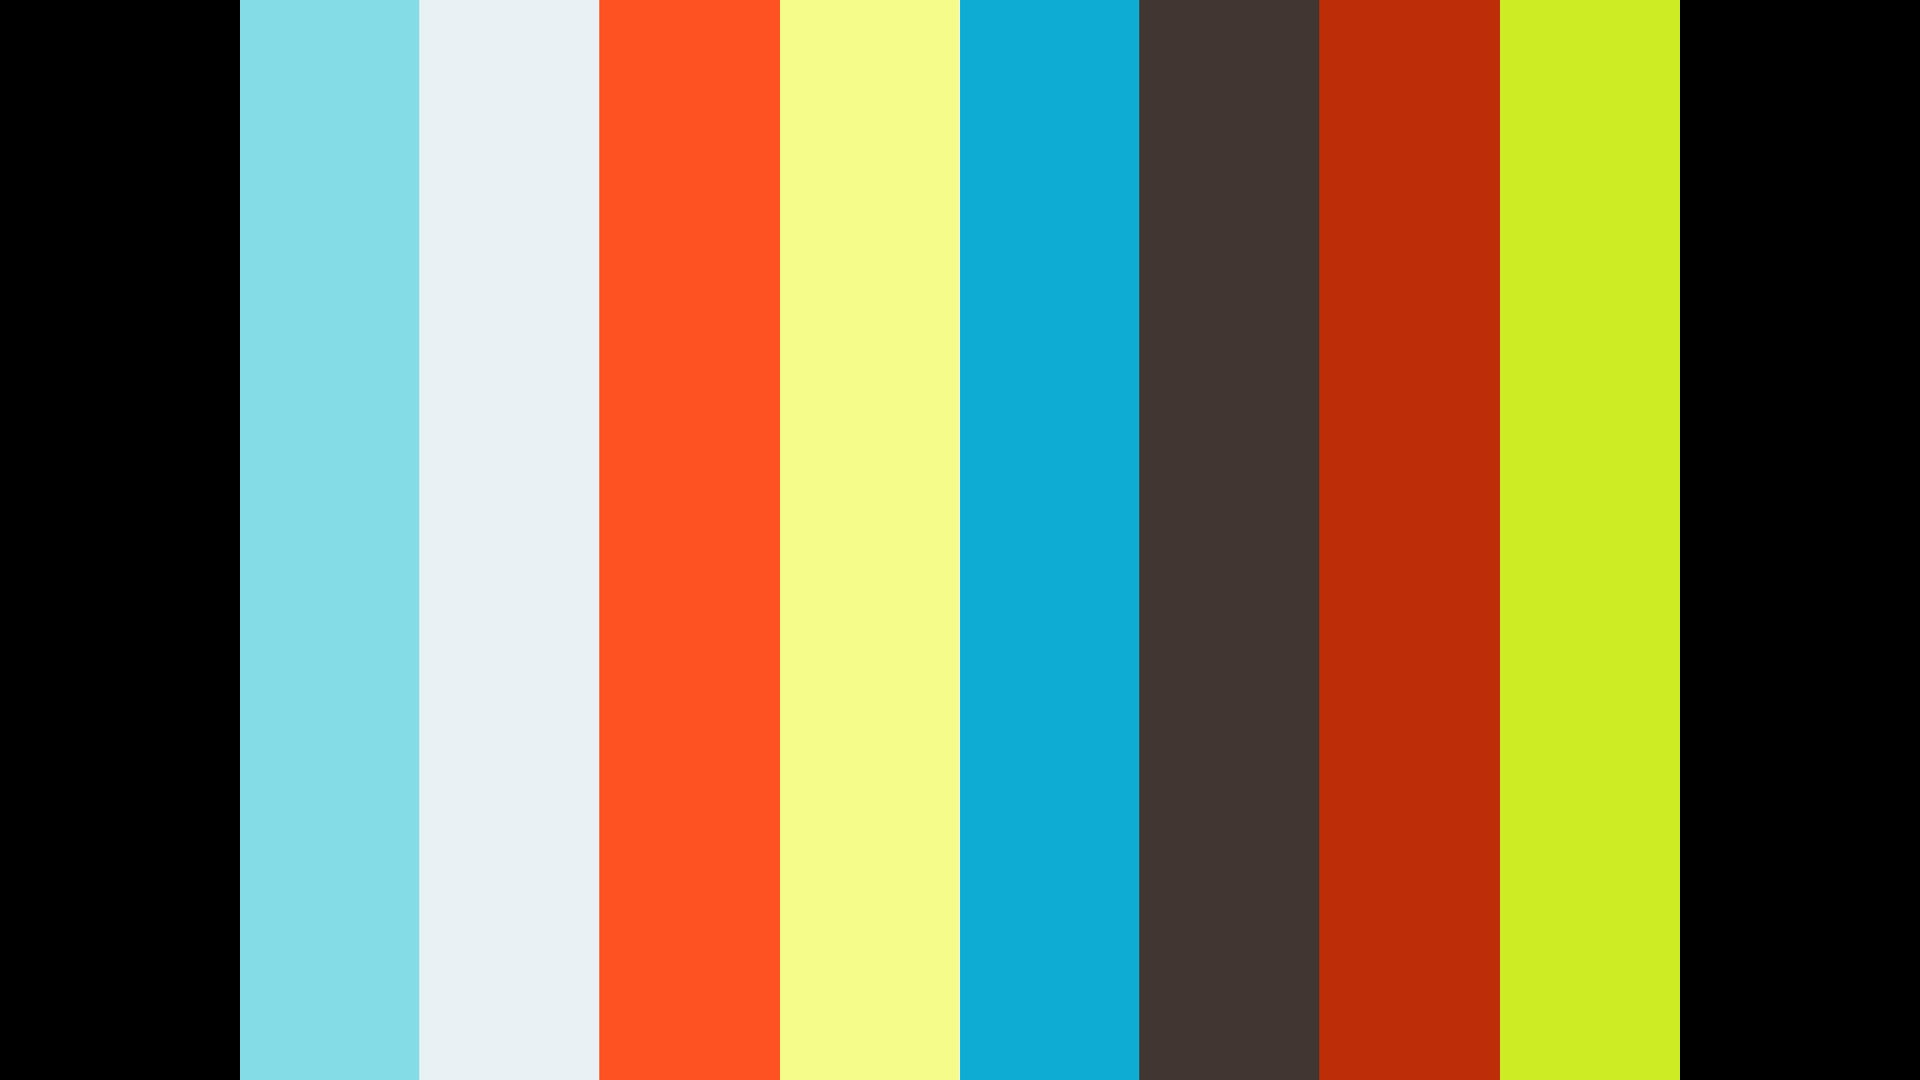 Christina + Avedis Wedding Video at St. Mina Coptic Church & Mission Inn